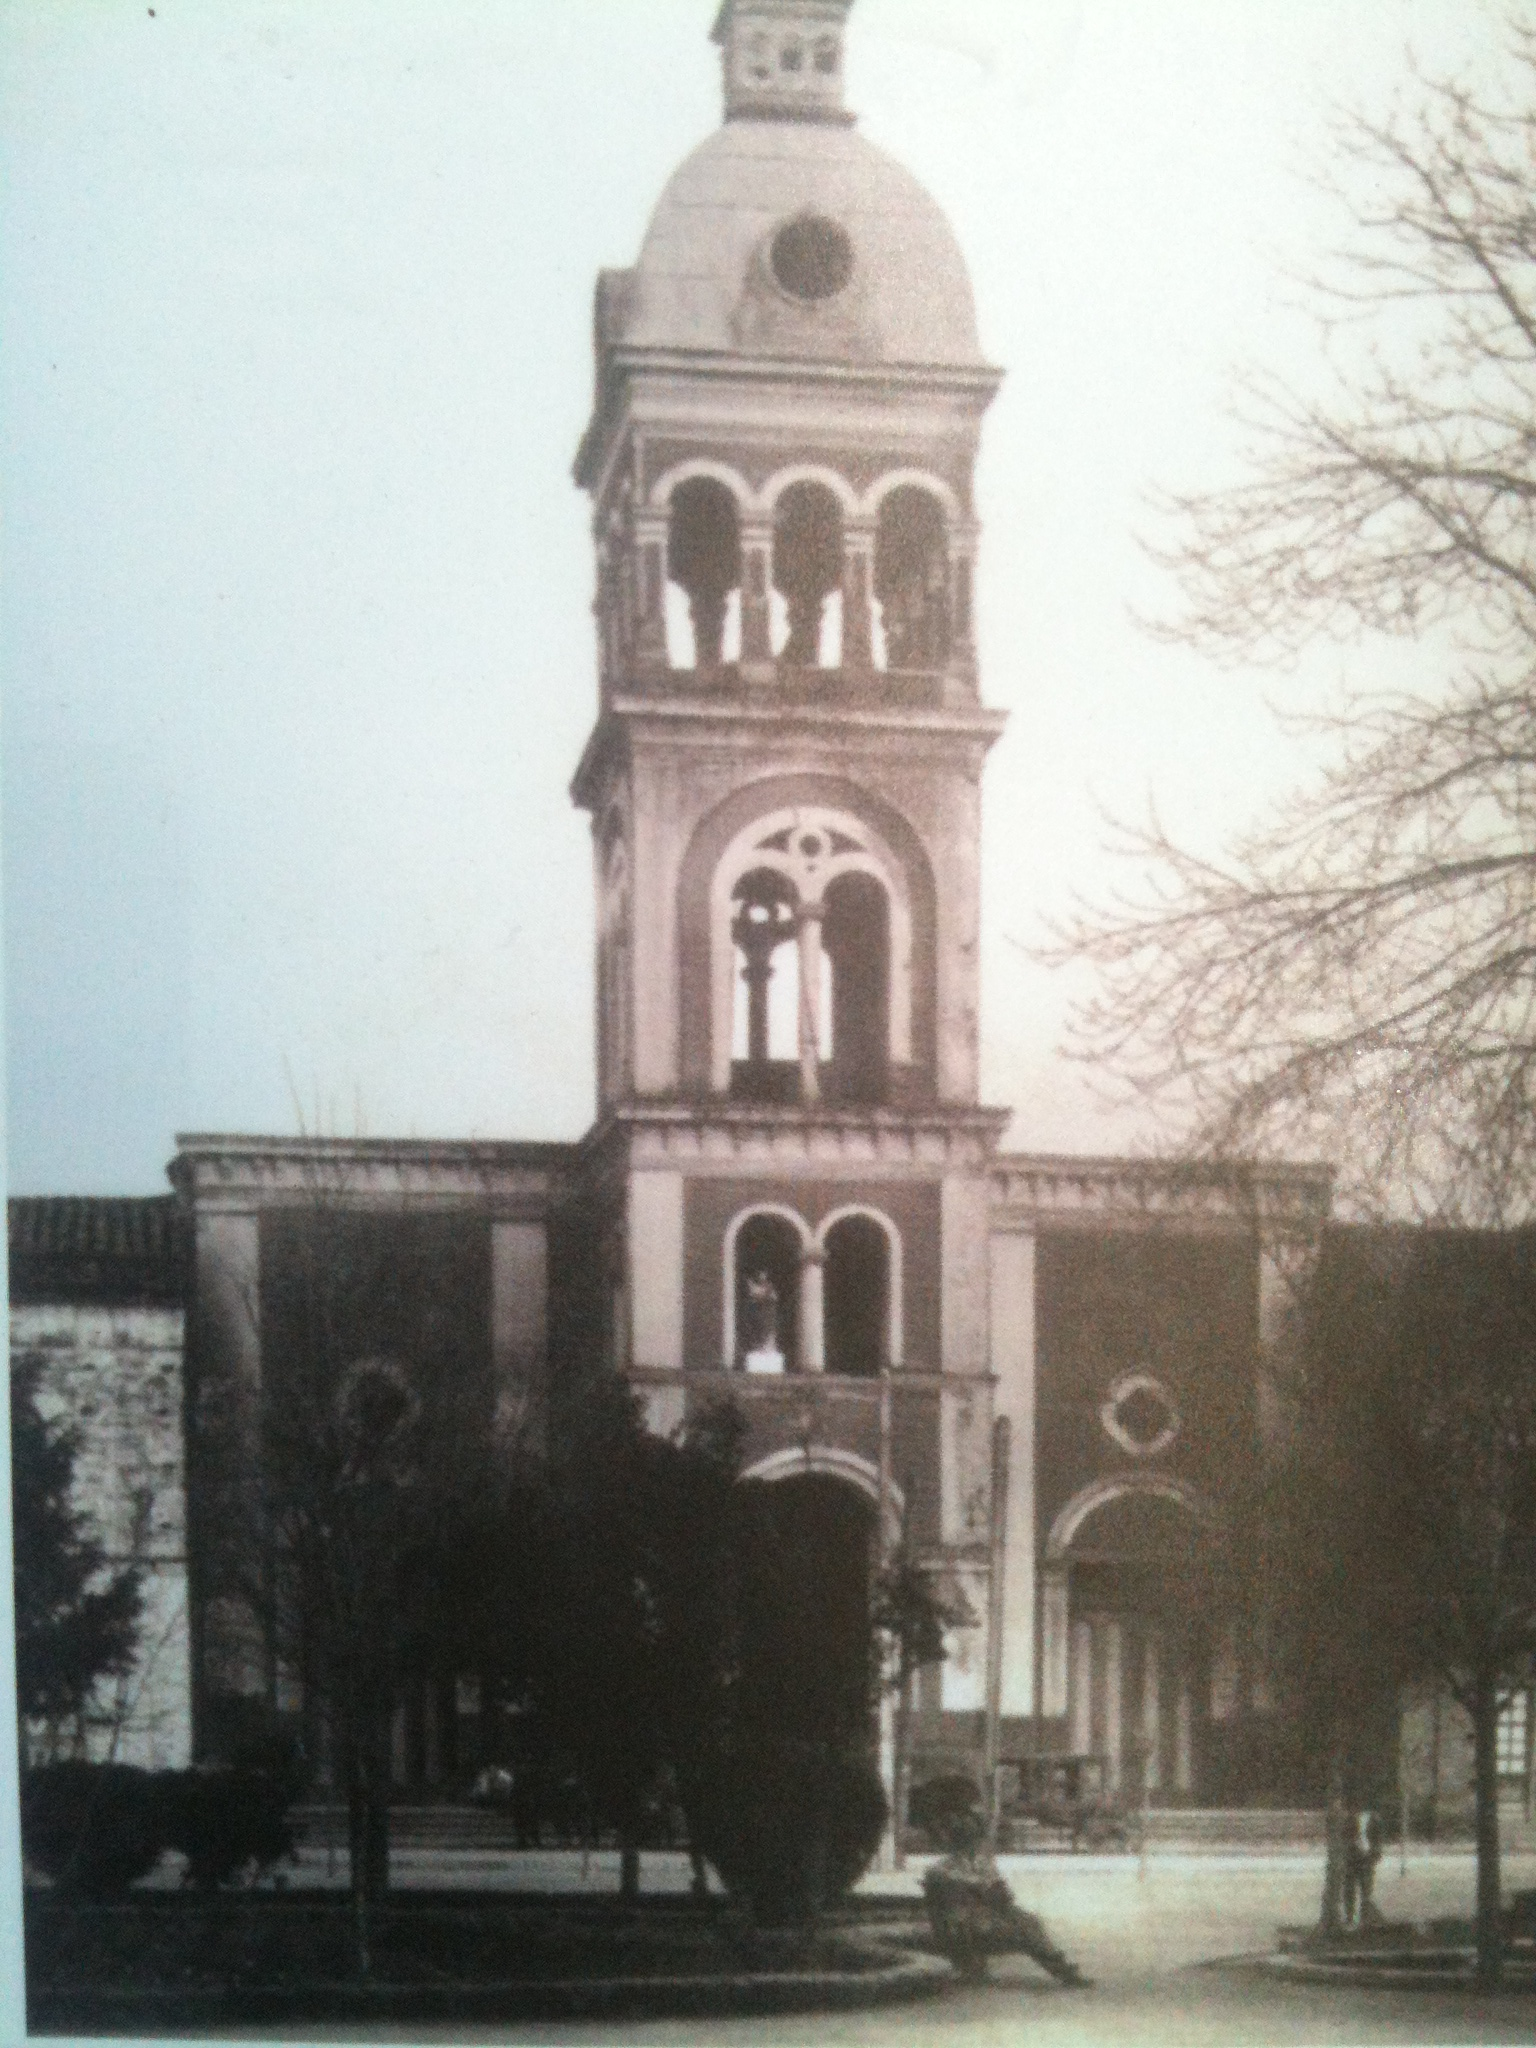 Enterreno - Fotos históricas de chile - fotos antiguas de Chile - Iglesia de Santo Domingo Cauquenes en 1902